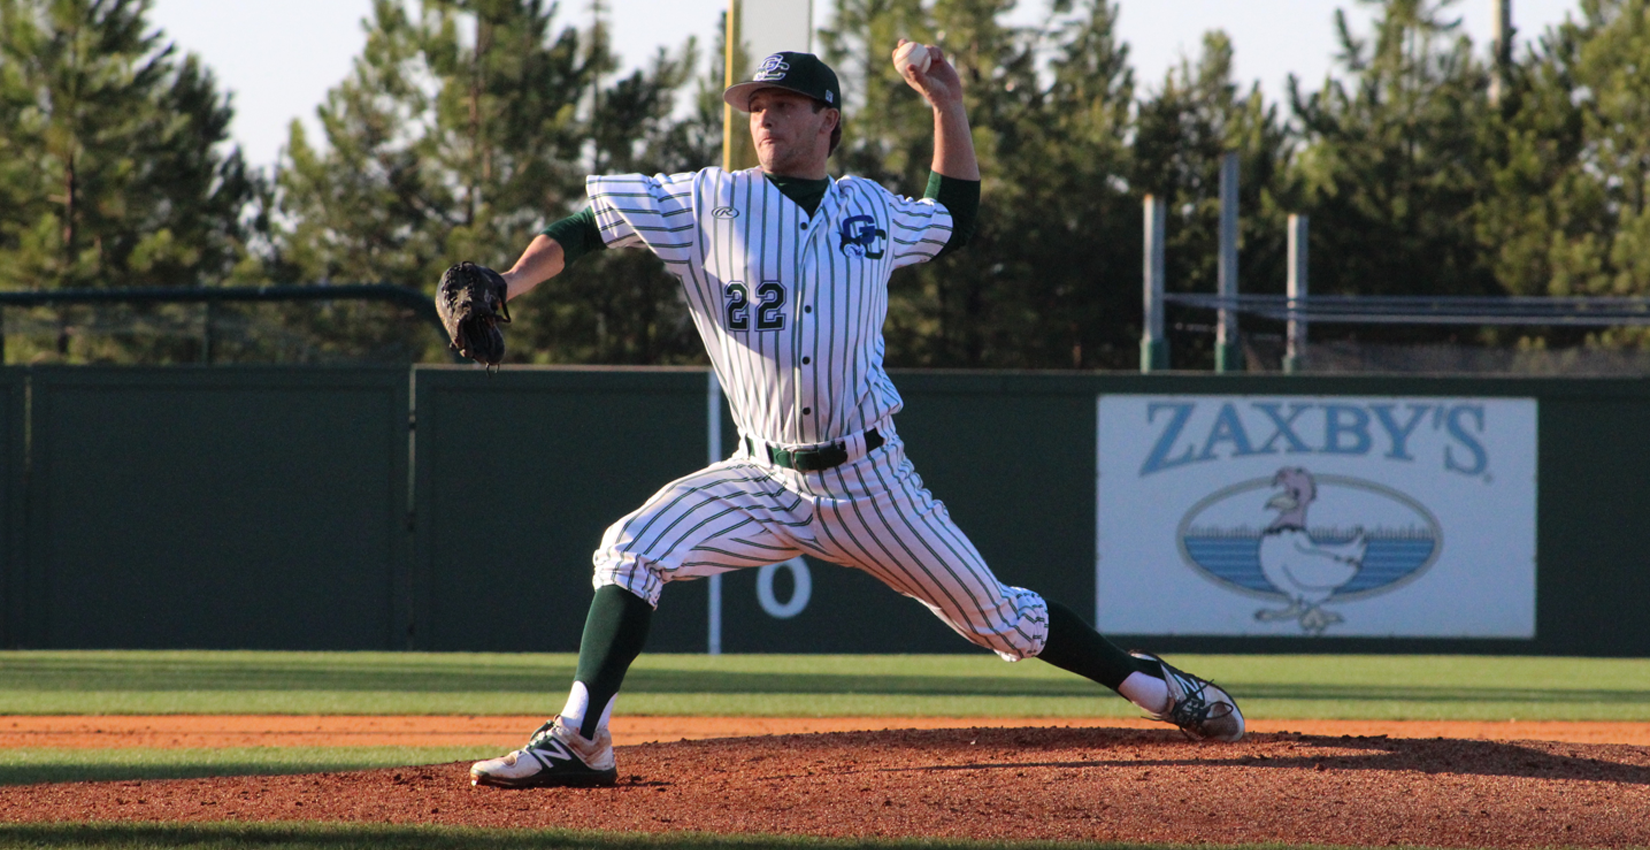 Georgia College Baseball's Sticks Come Alive Late, Taking Down Embry-Riddle, 11-6